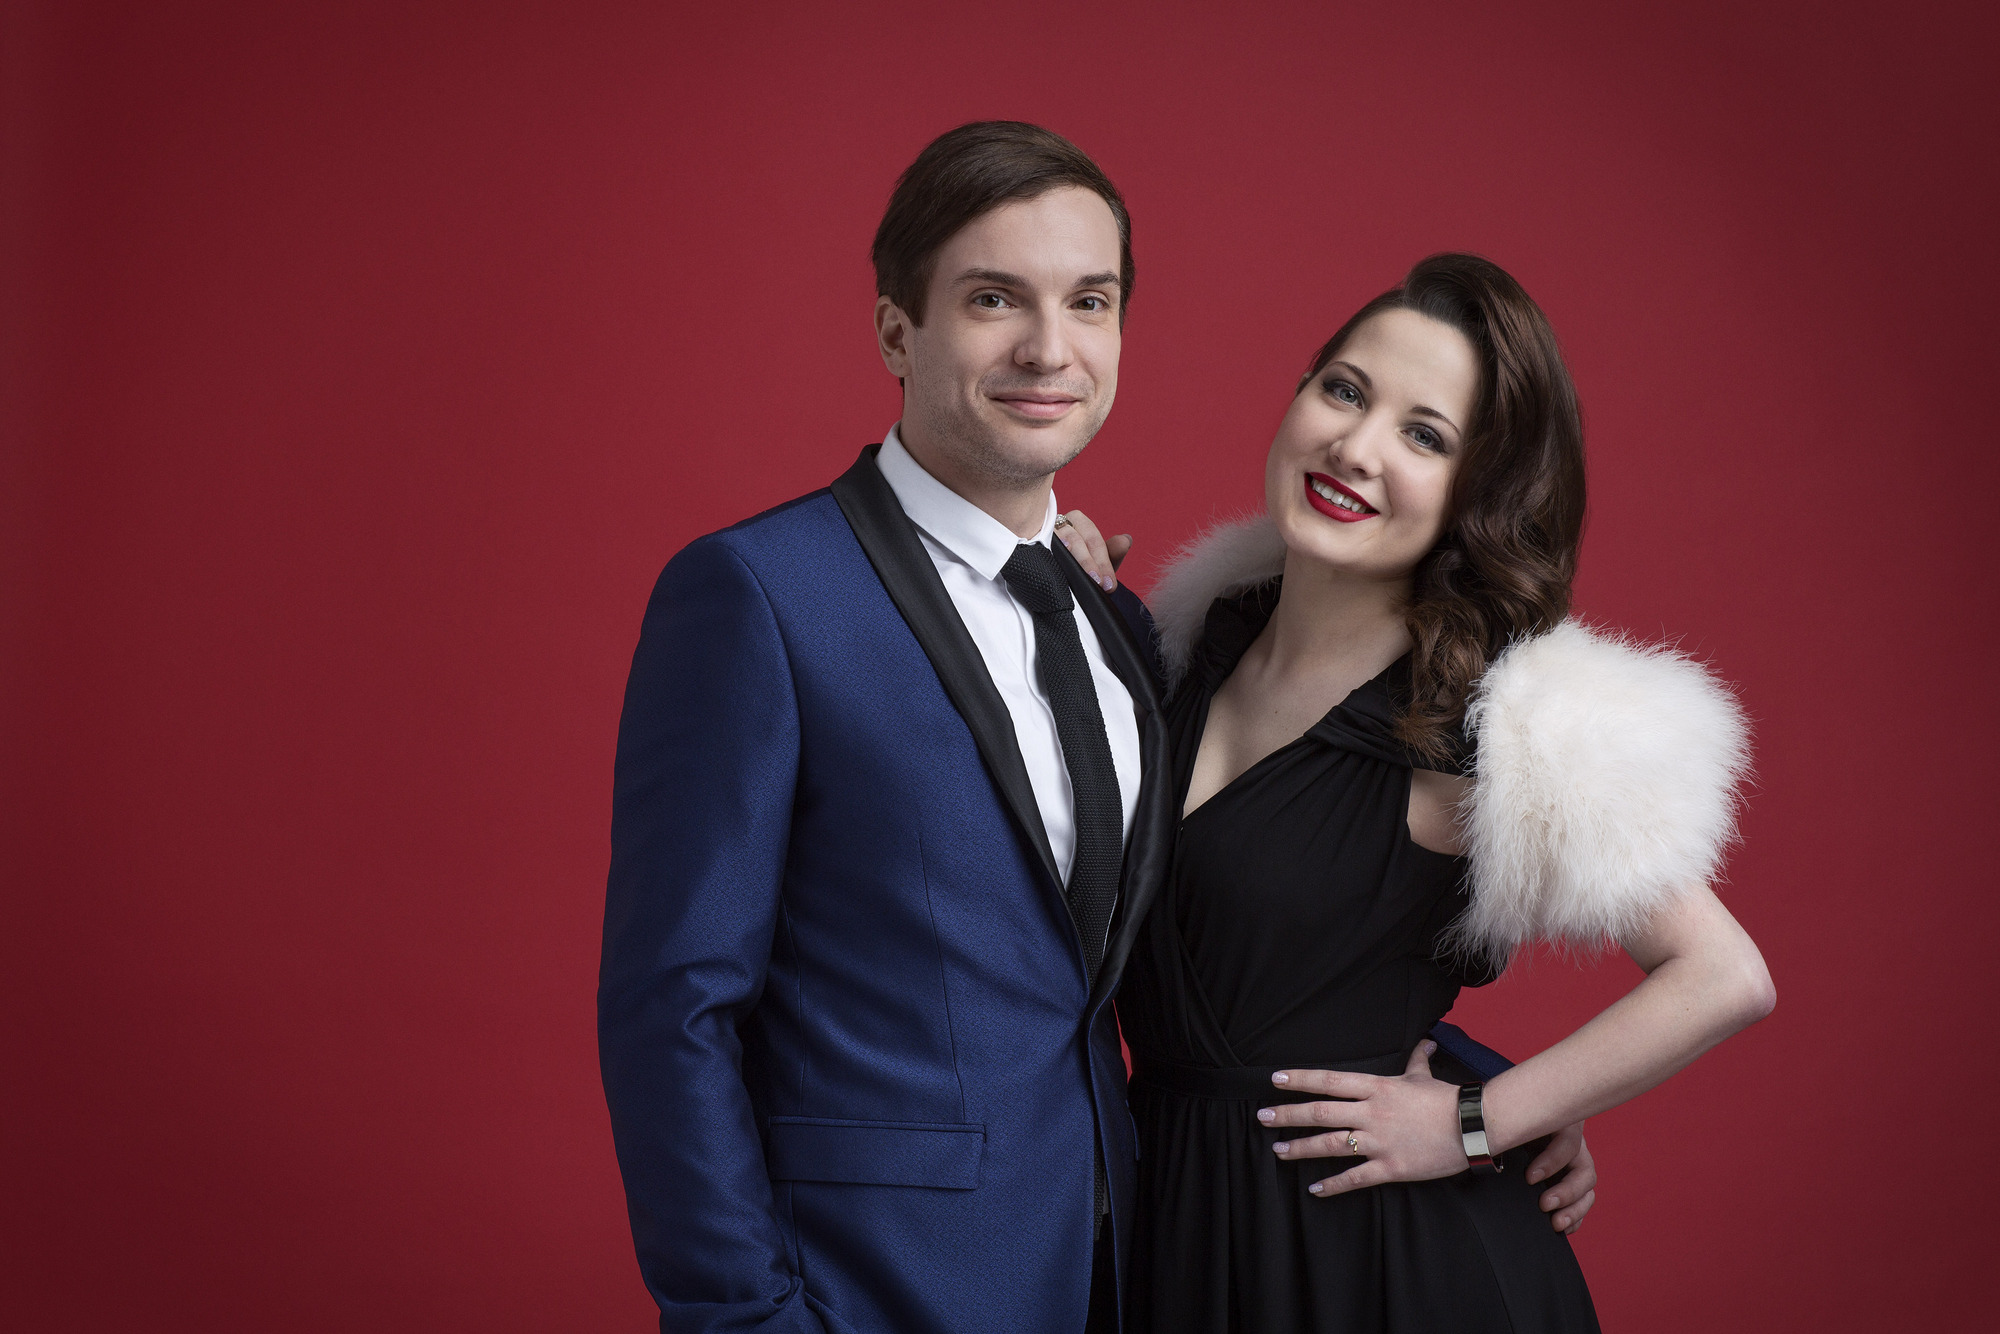 Why Electro Velvet's Eurovision staging could damage their chance of success